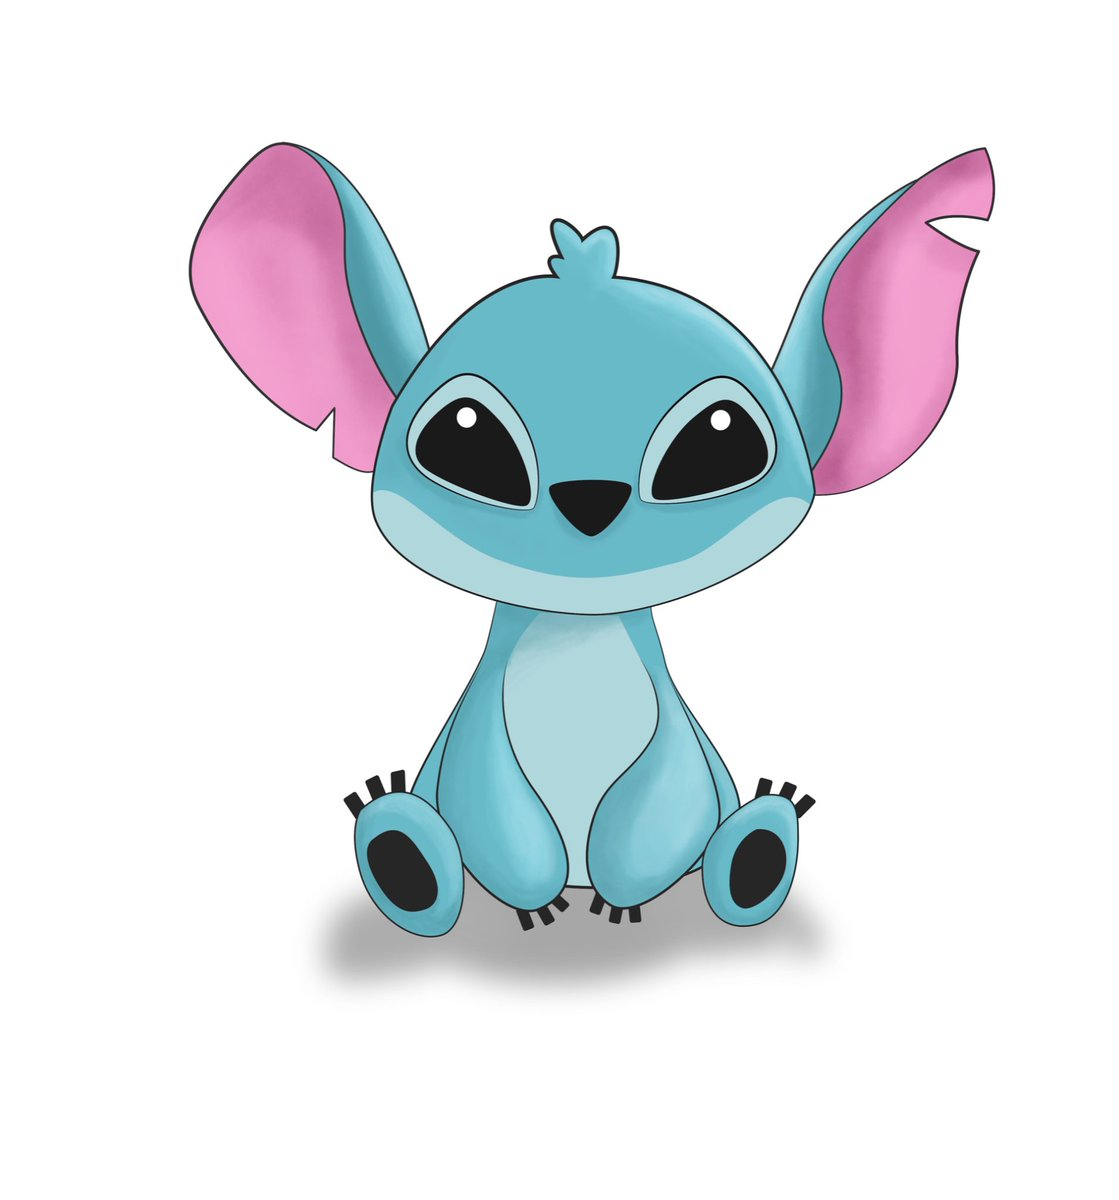 Stitch is here!   Made in affinity designer for iPad. Loving the vector and pixel personas. #illustration #madeinaffinity #affinitydesigner   @affinitybyserif<br>http://pic.twitter.com/Bp3b5Vwc8x